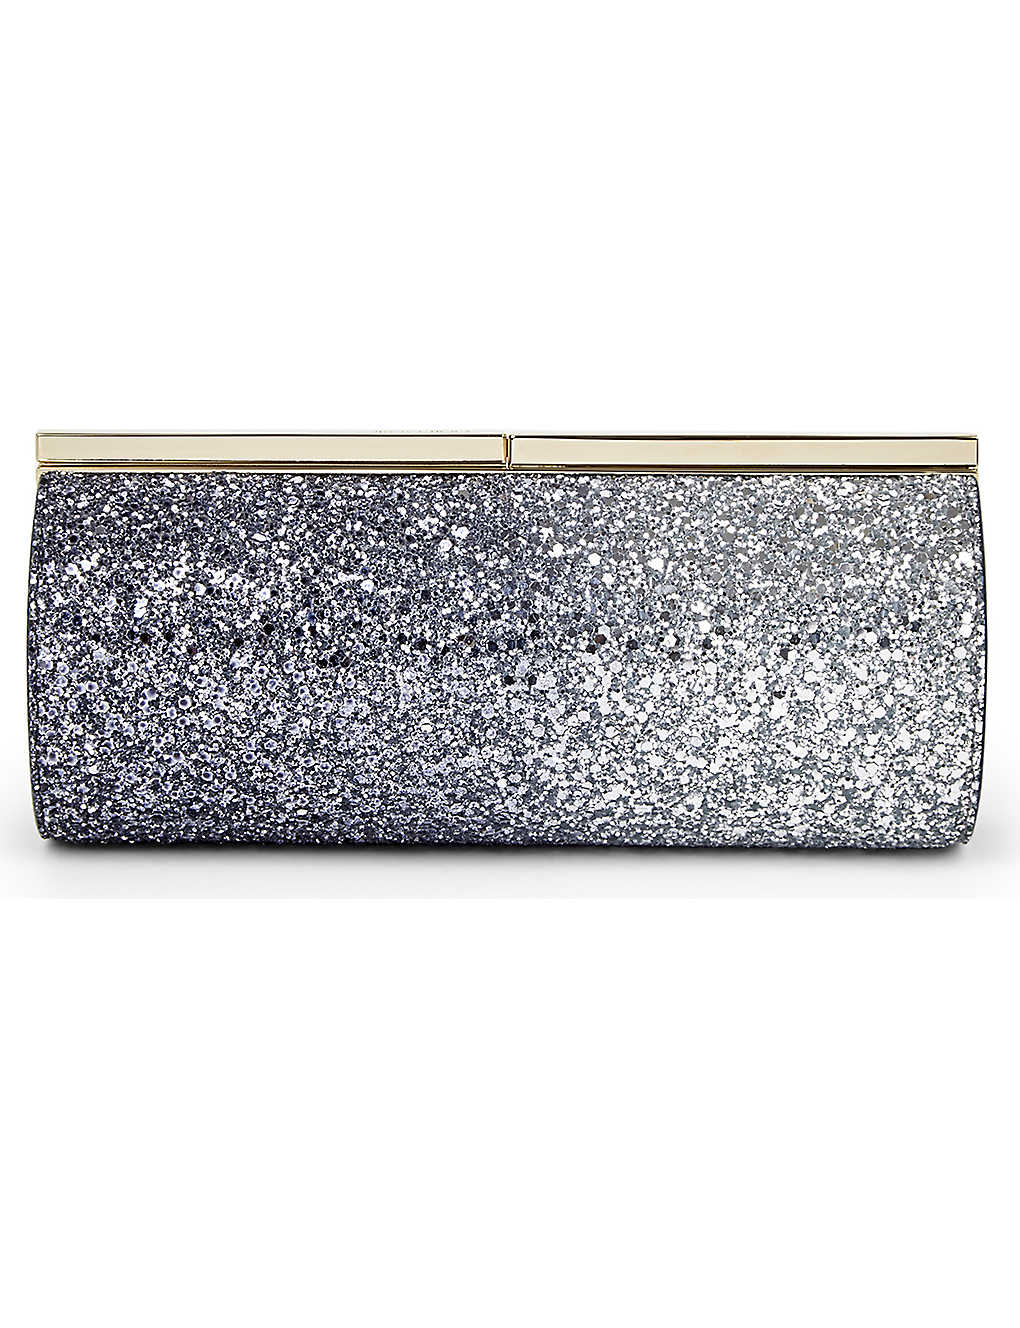 dbda6b78d6b9 JIMMY CHOO - Trinket glitter dégradé tube clutch